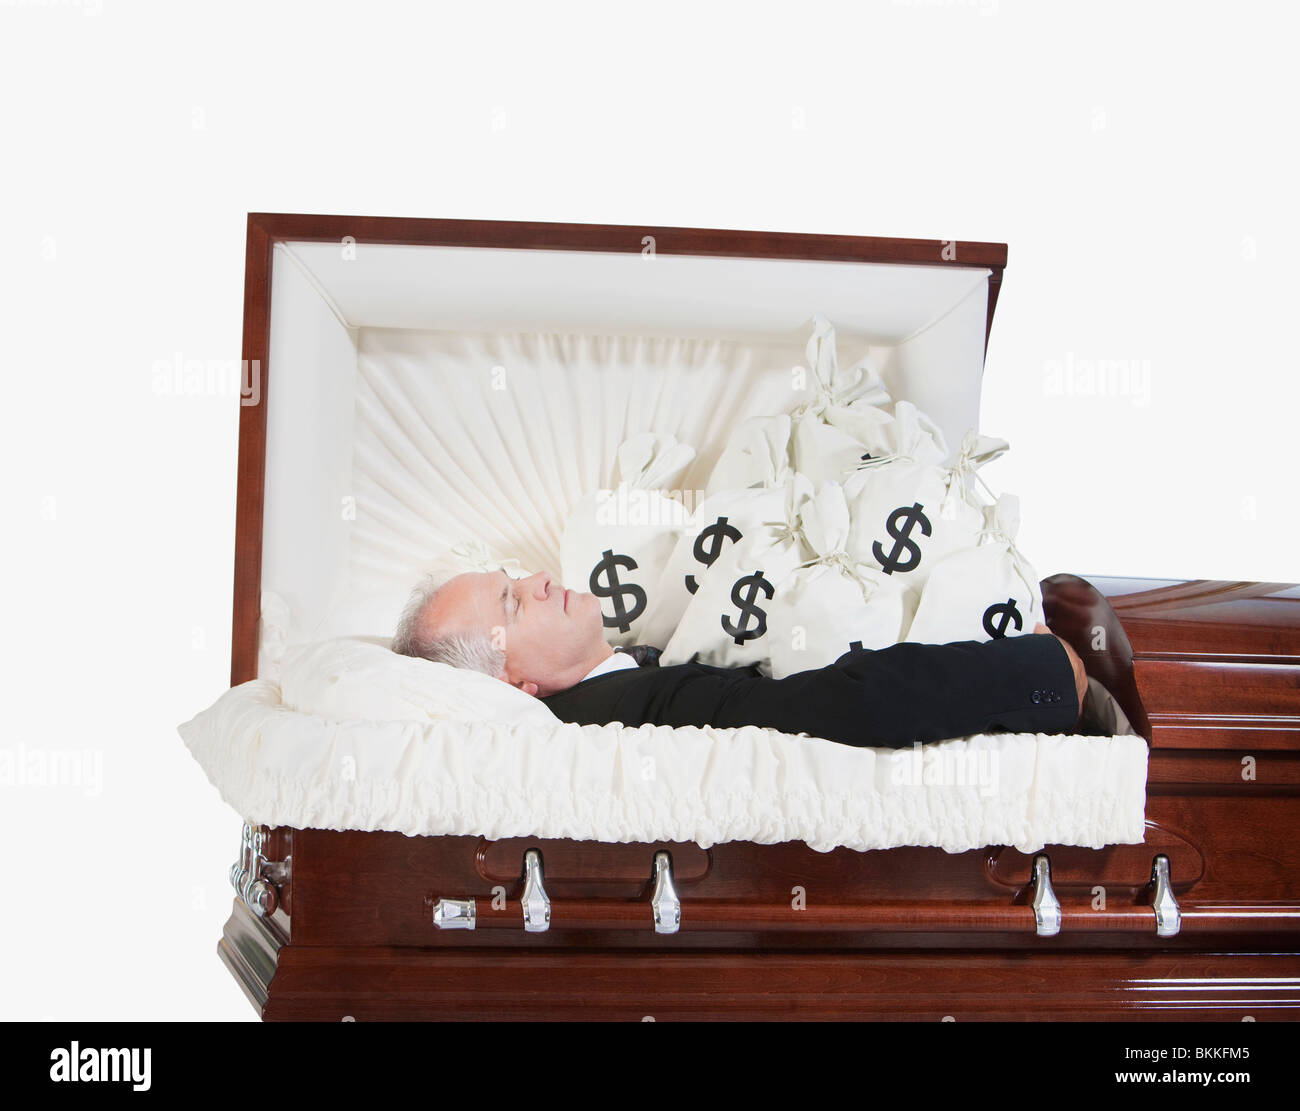 A Deceased Man In A Coffin Surrounded By Bags Of Money - Stock Image